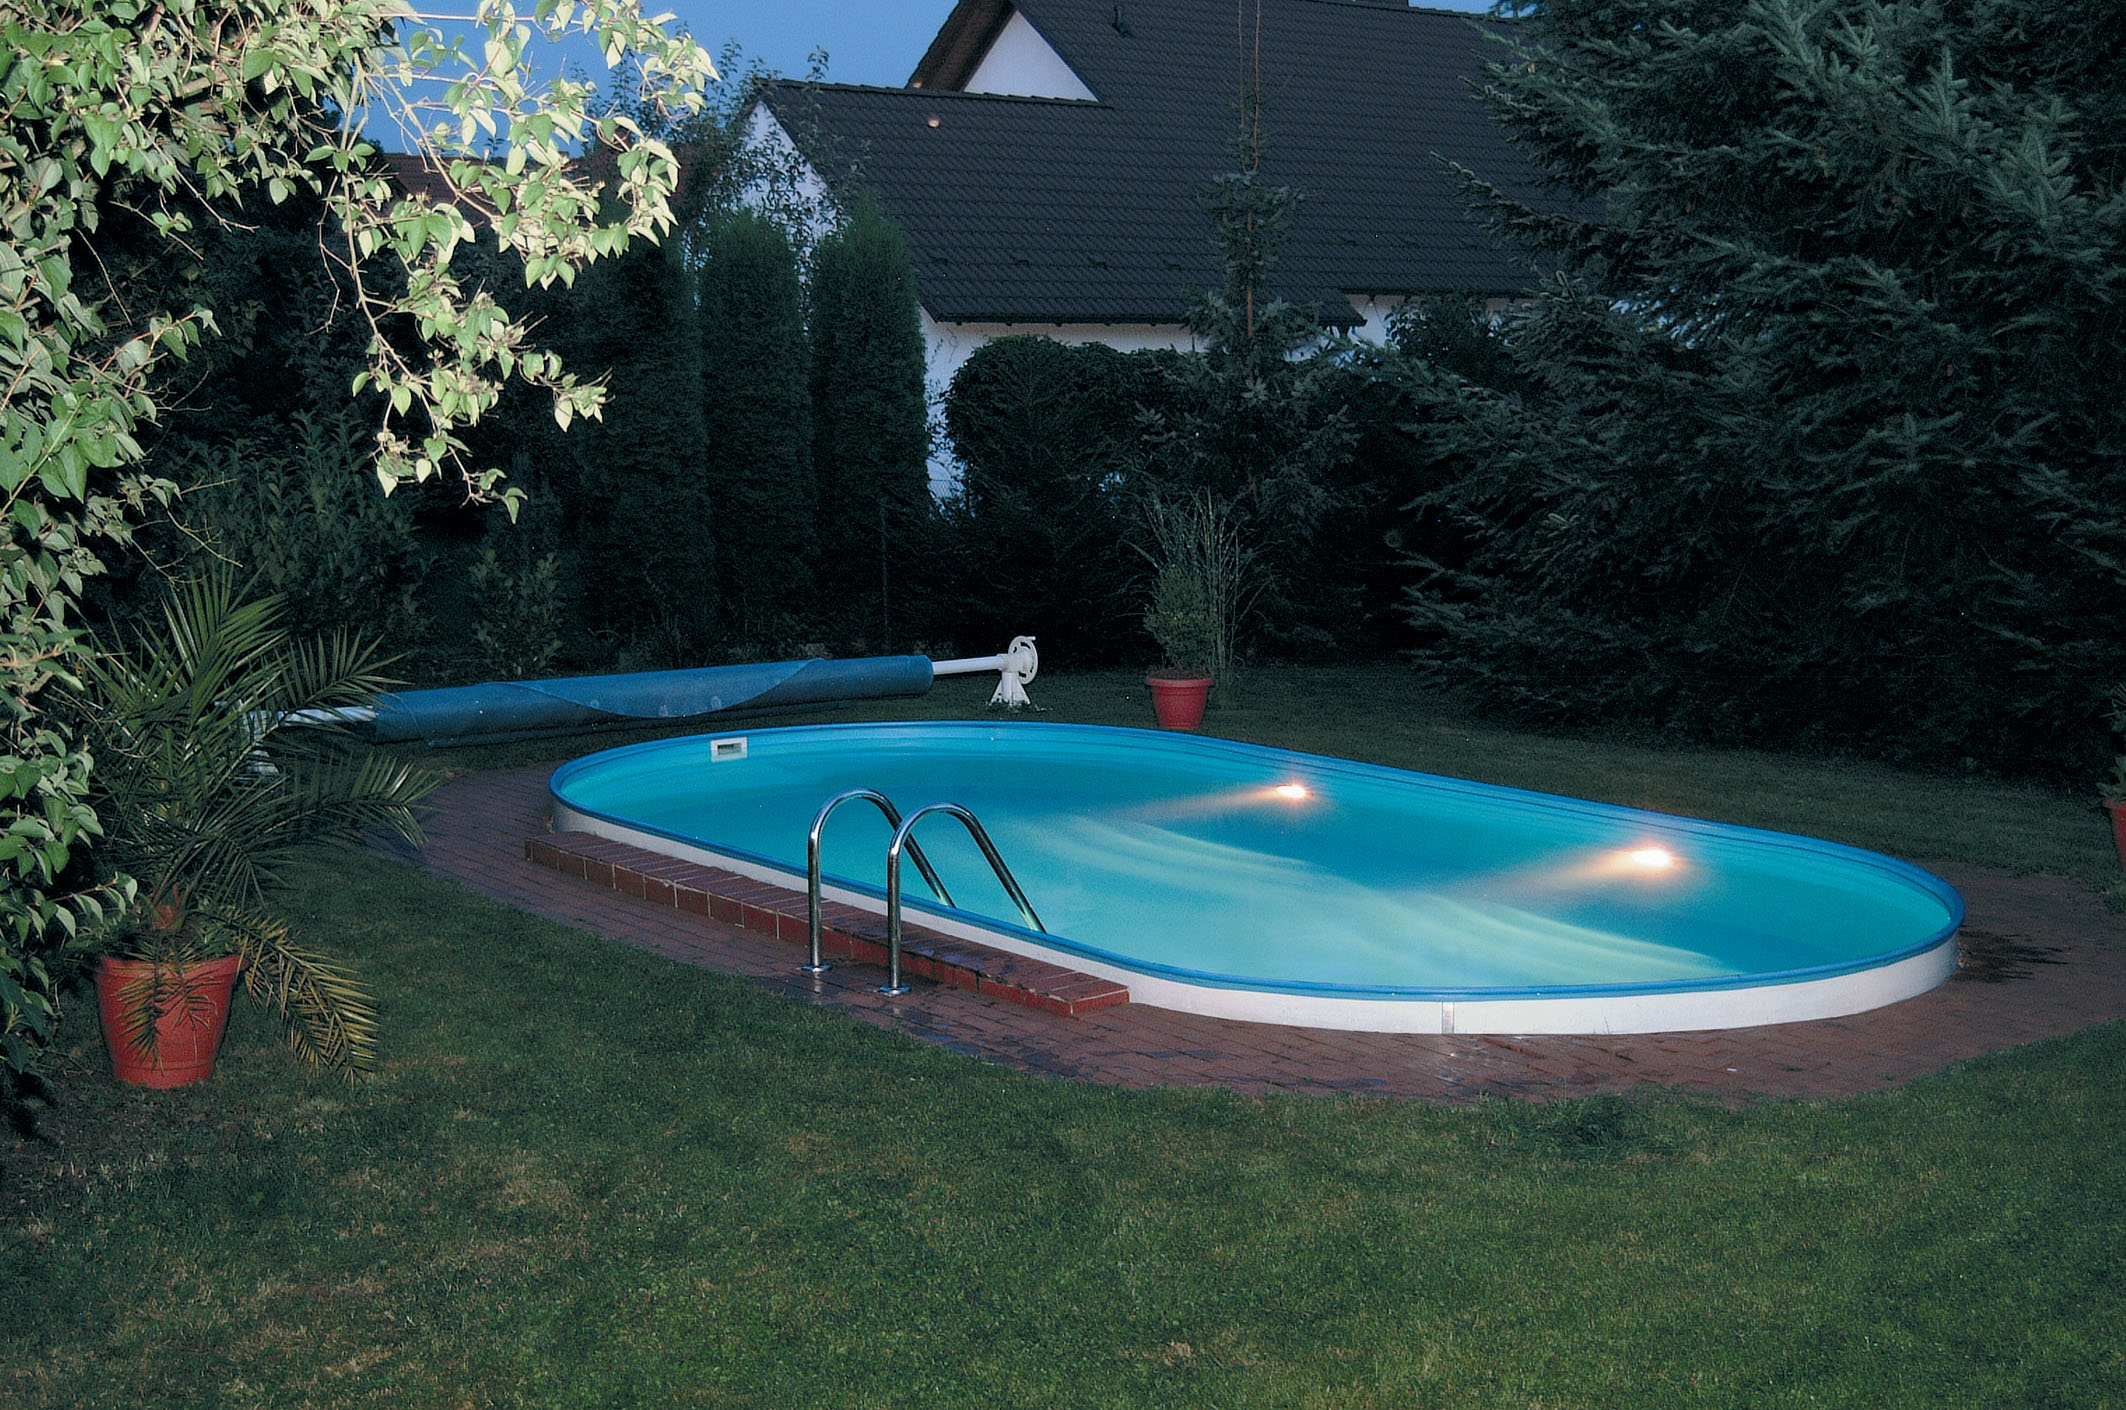 Trend pool set ovalform 450 x 250 x 120 cm mit for Swimmingpool abverkauf